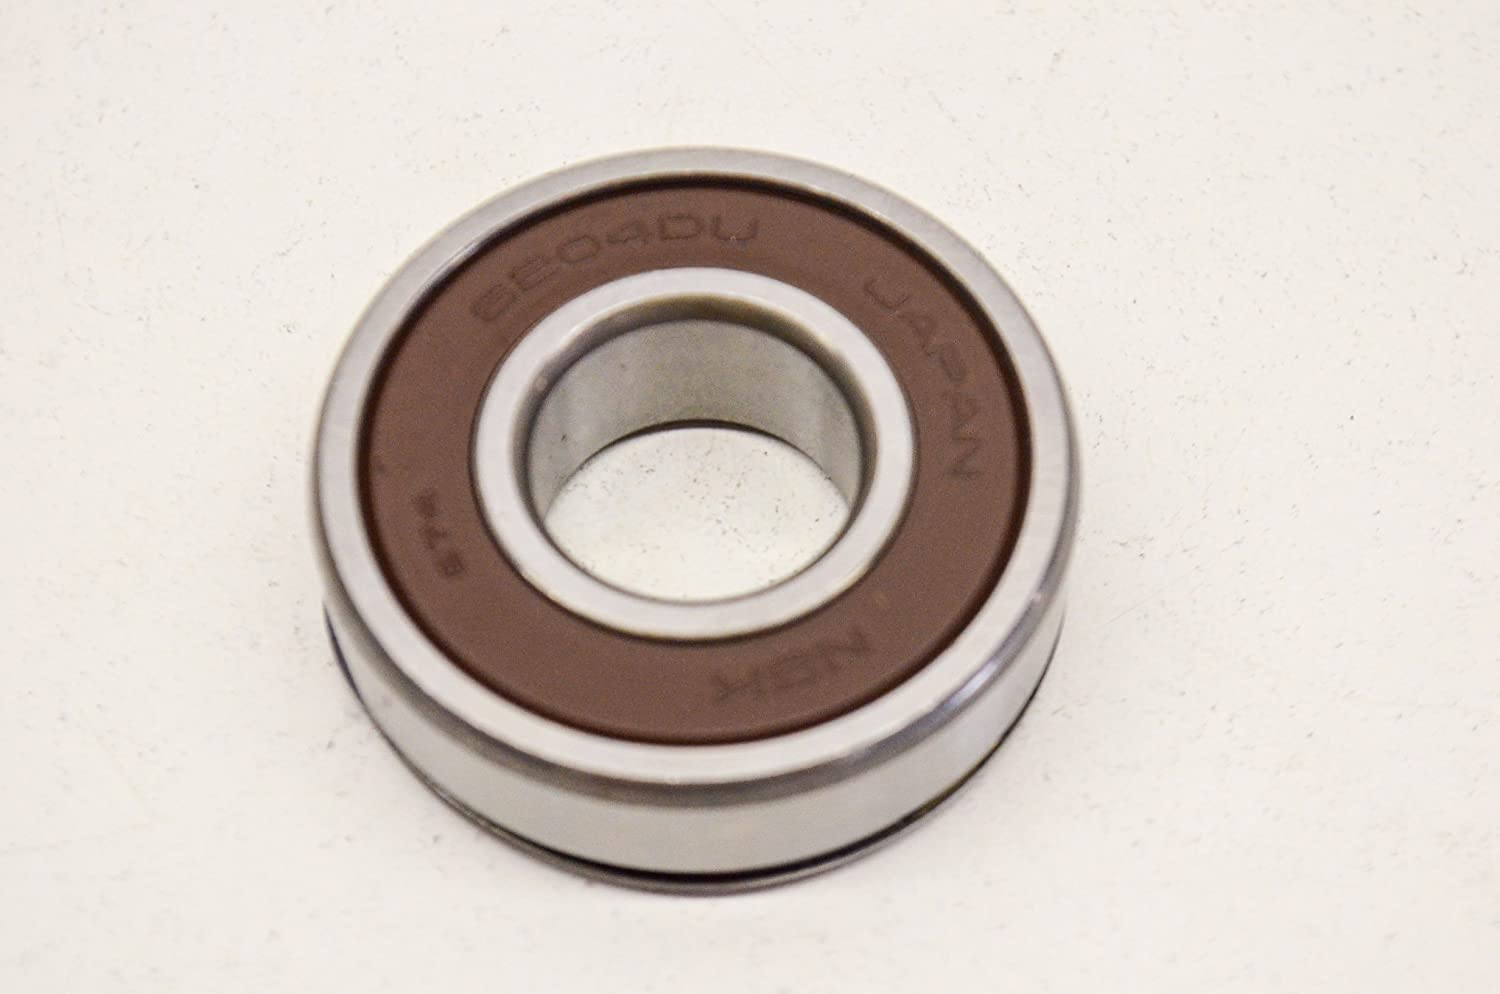 6204 Honda 91051-ZB4-003 Bearing Assembly